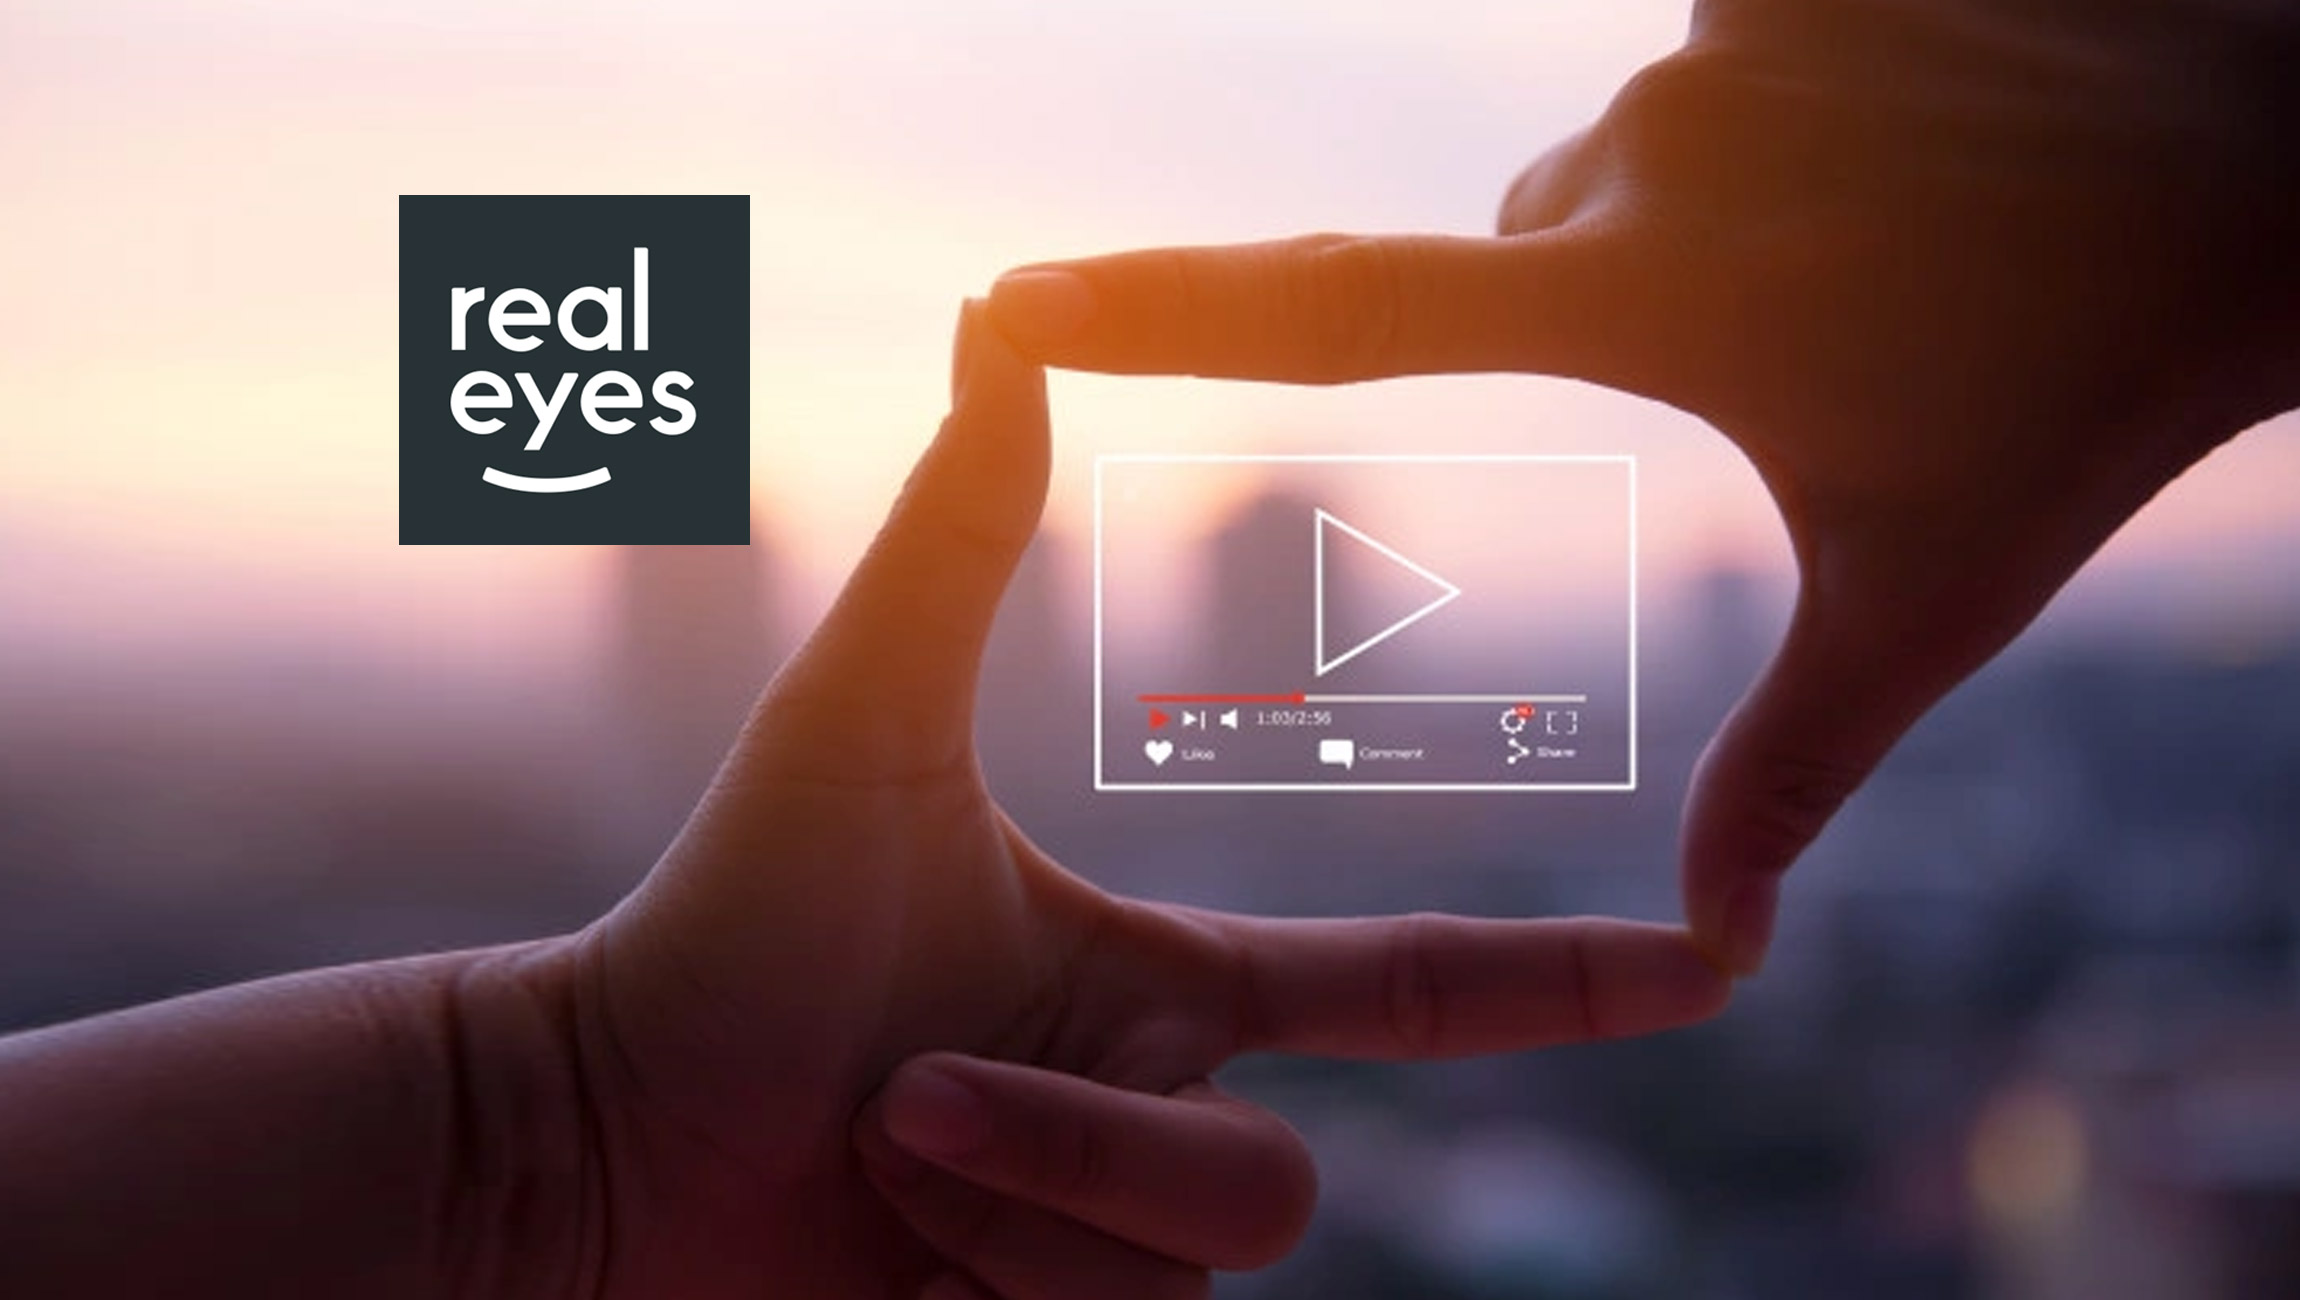 Realeyes Attention Measurement For Video Advertising Achieves Performance Milestones, Brand Adoption and U.S. Patent